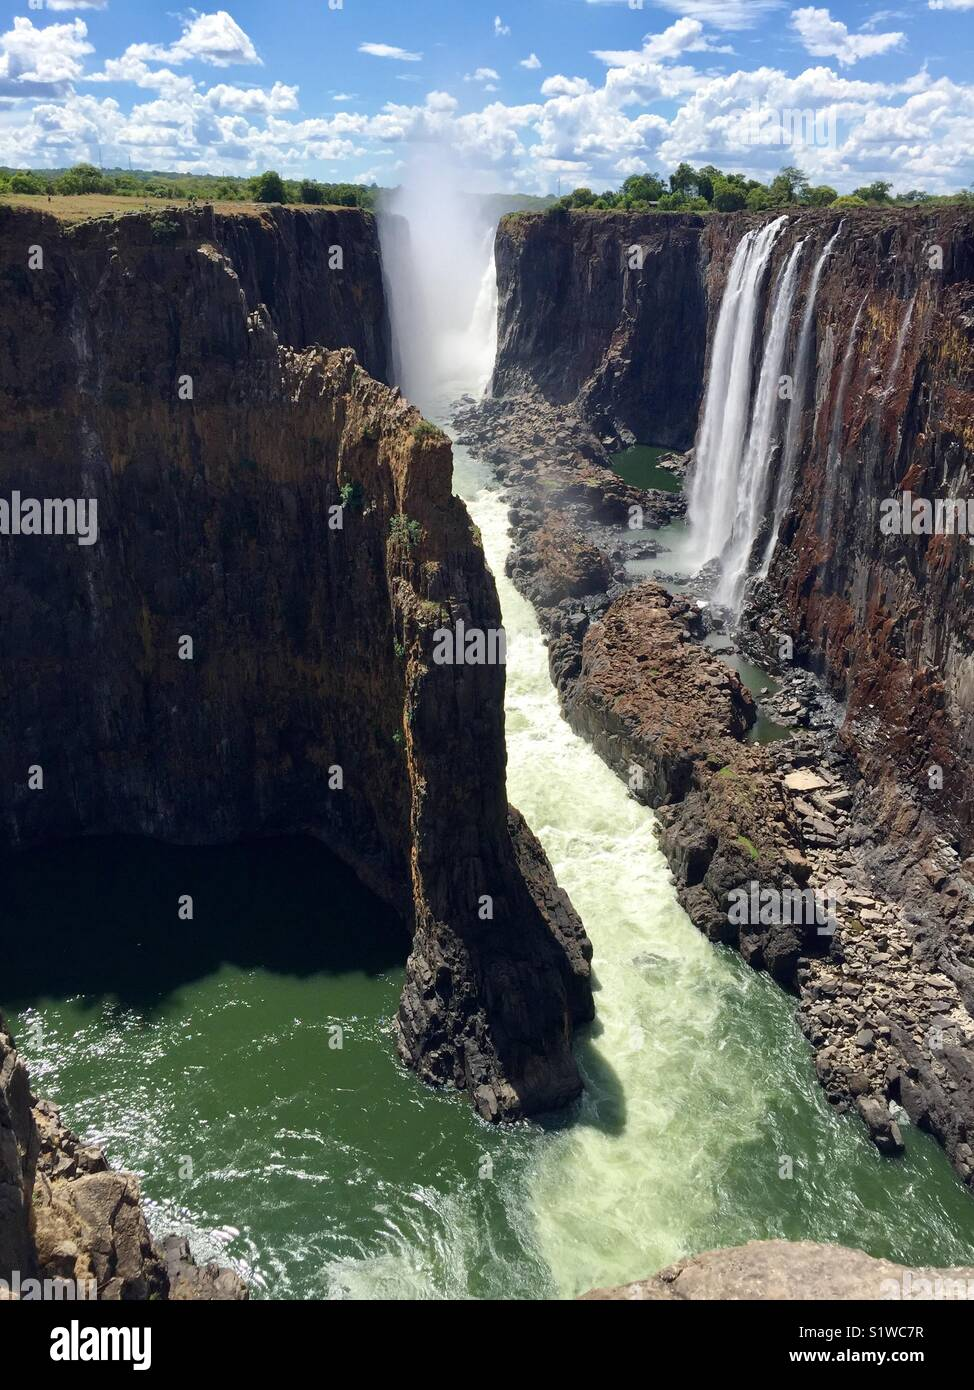 The Bare face of the Mighty Victoria Falls in October. - Stock Image